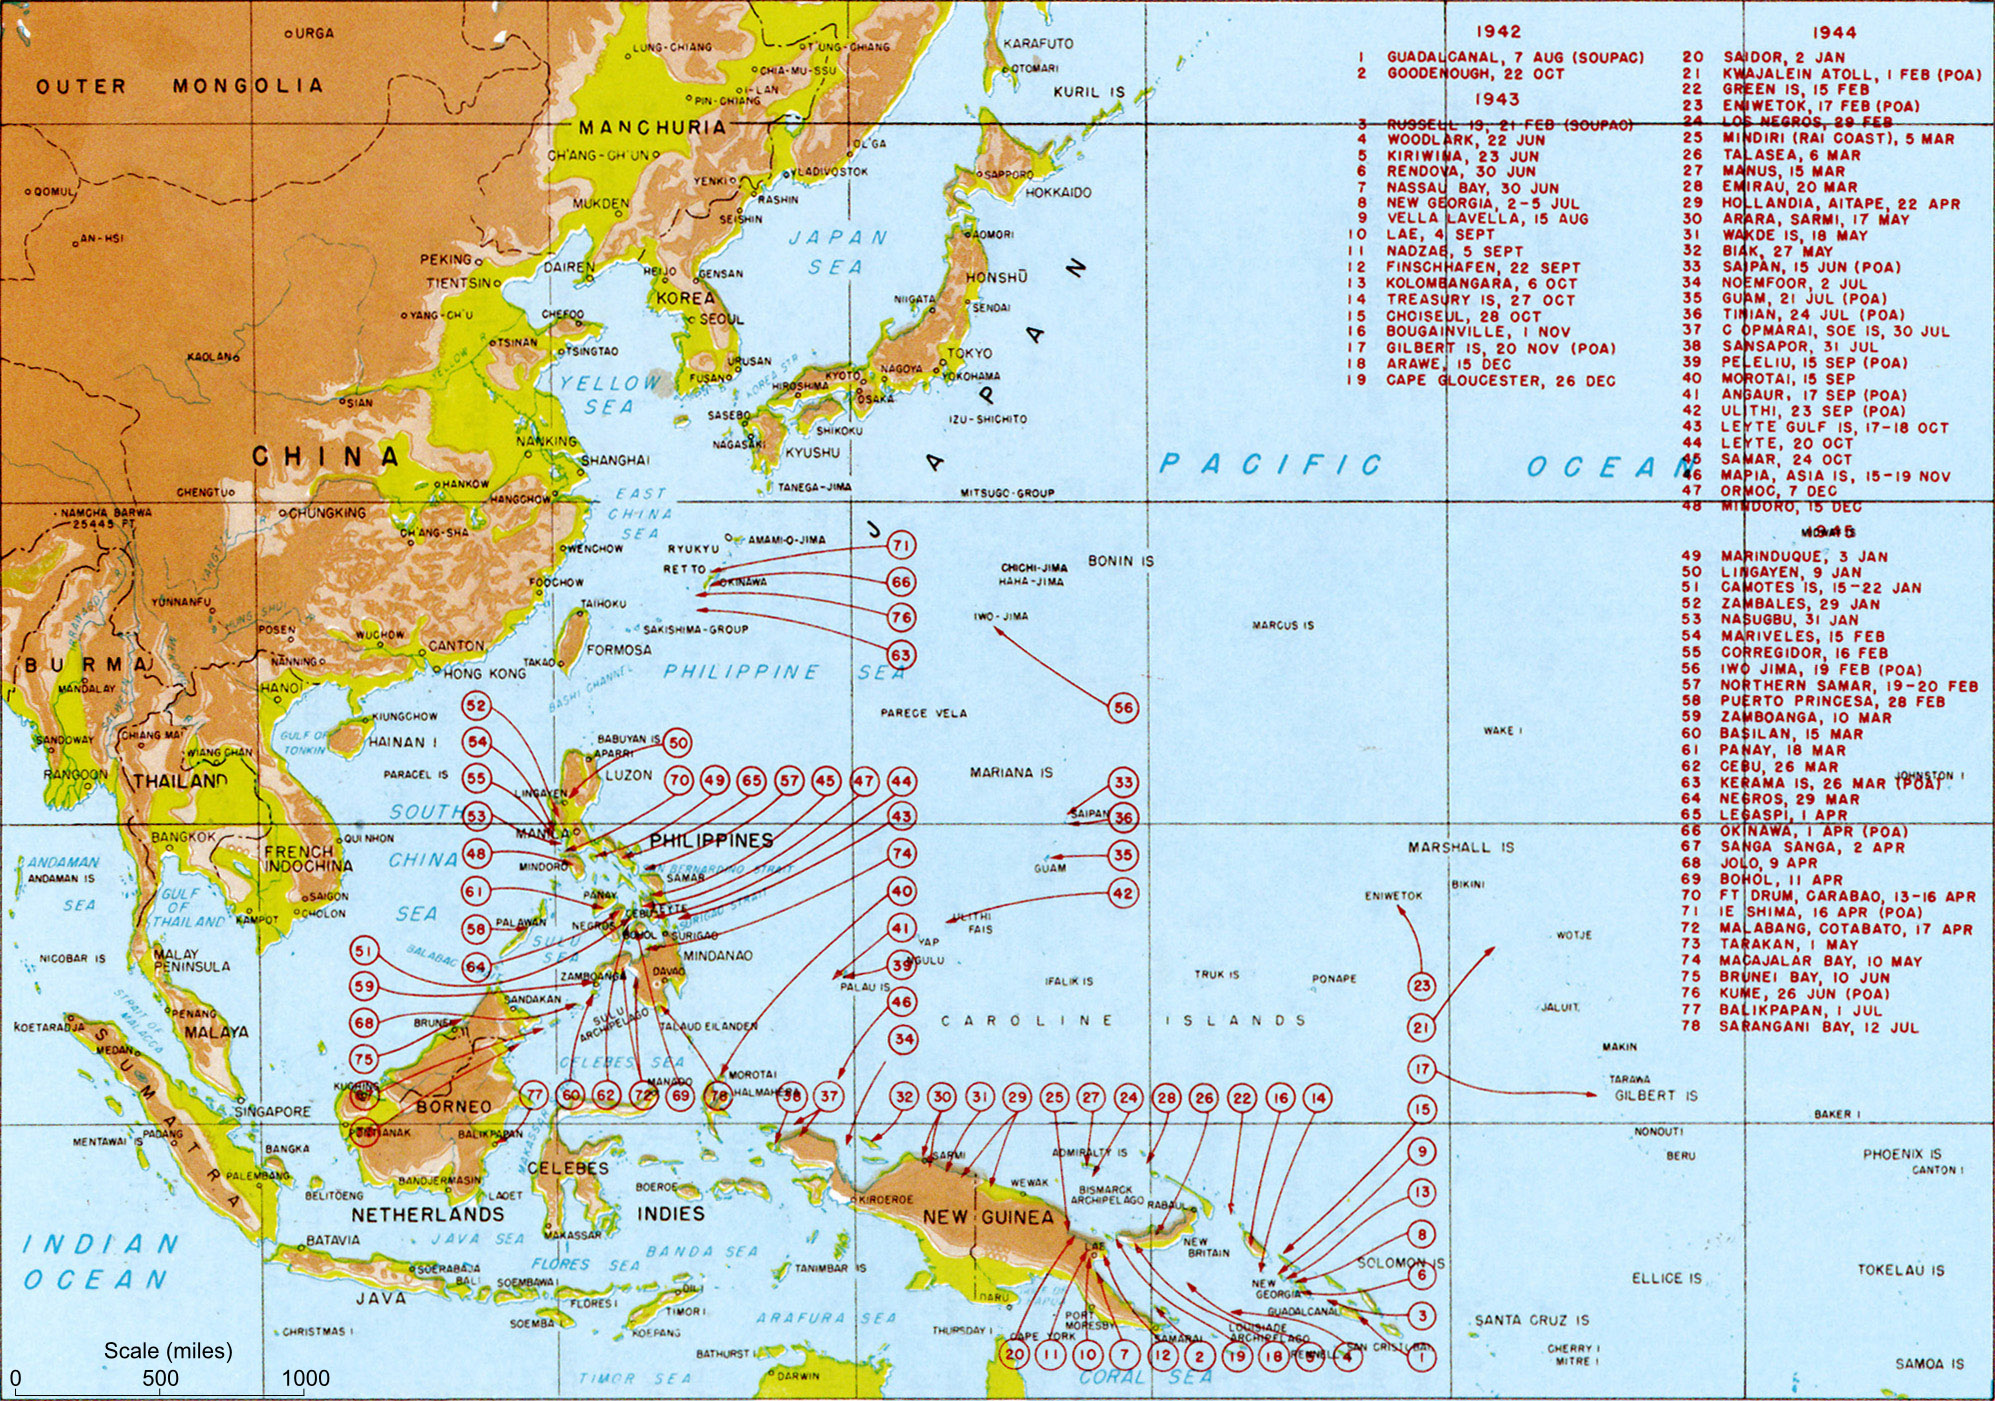 Map Map Of Major Pacific War Engagements